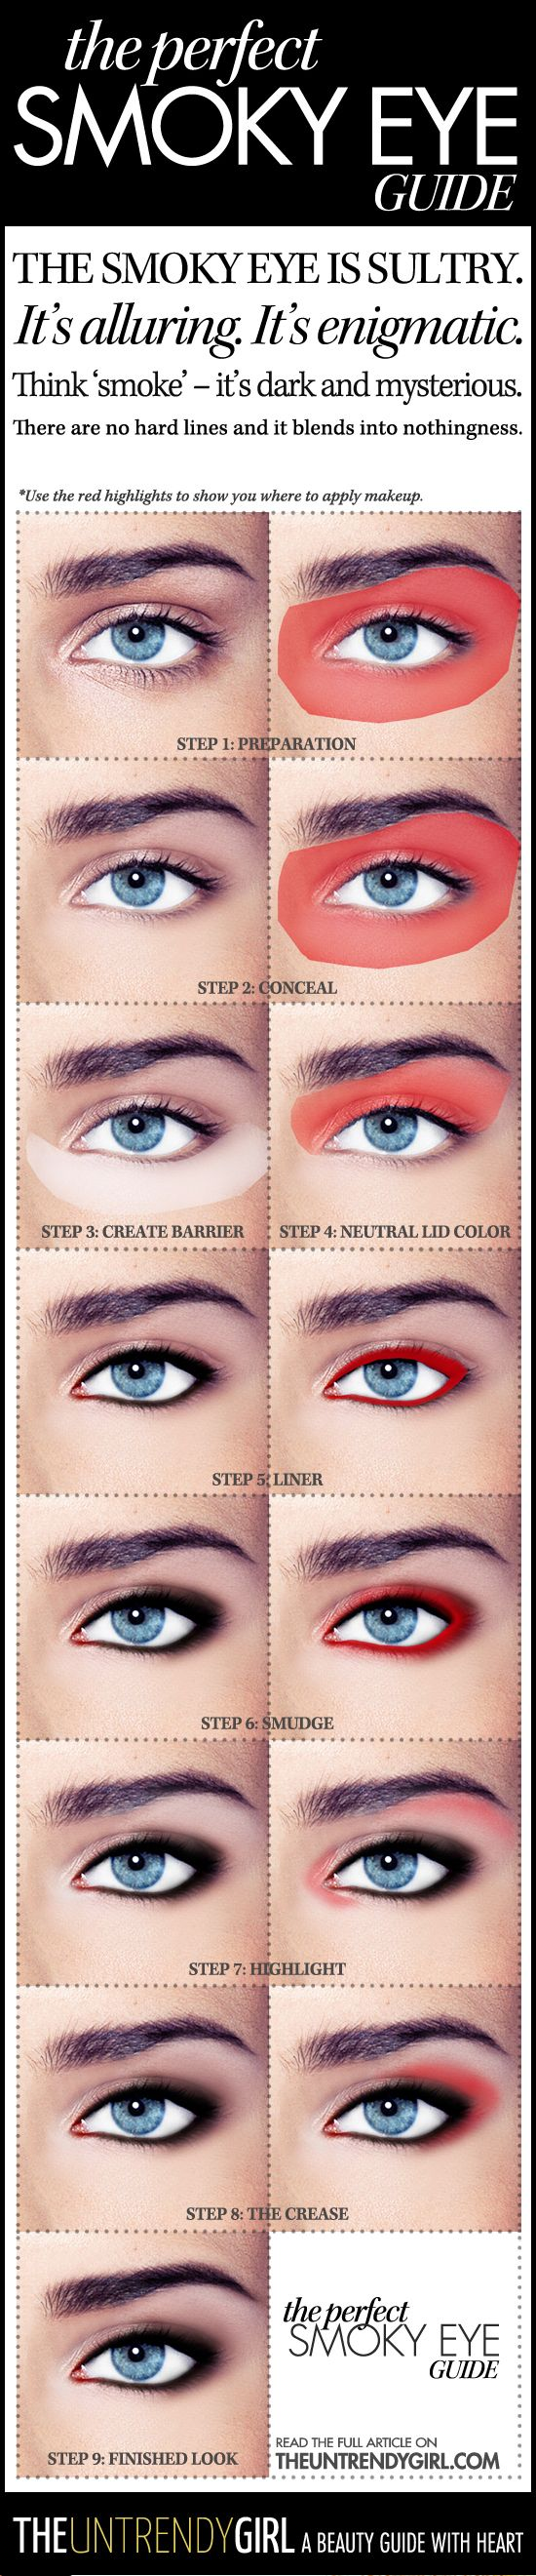 The smokey eye guide! Love it, Haha!